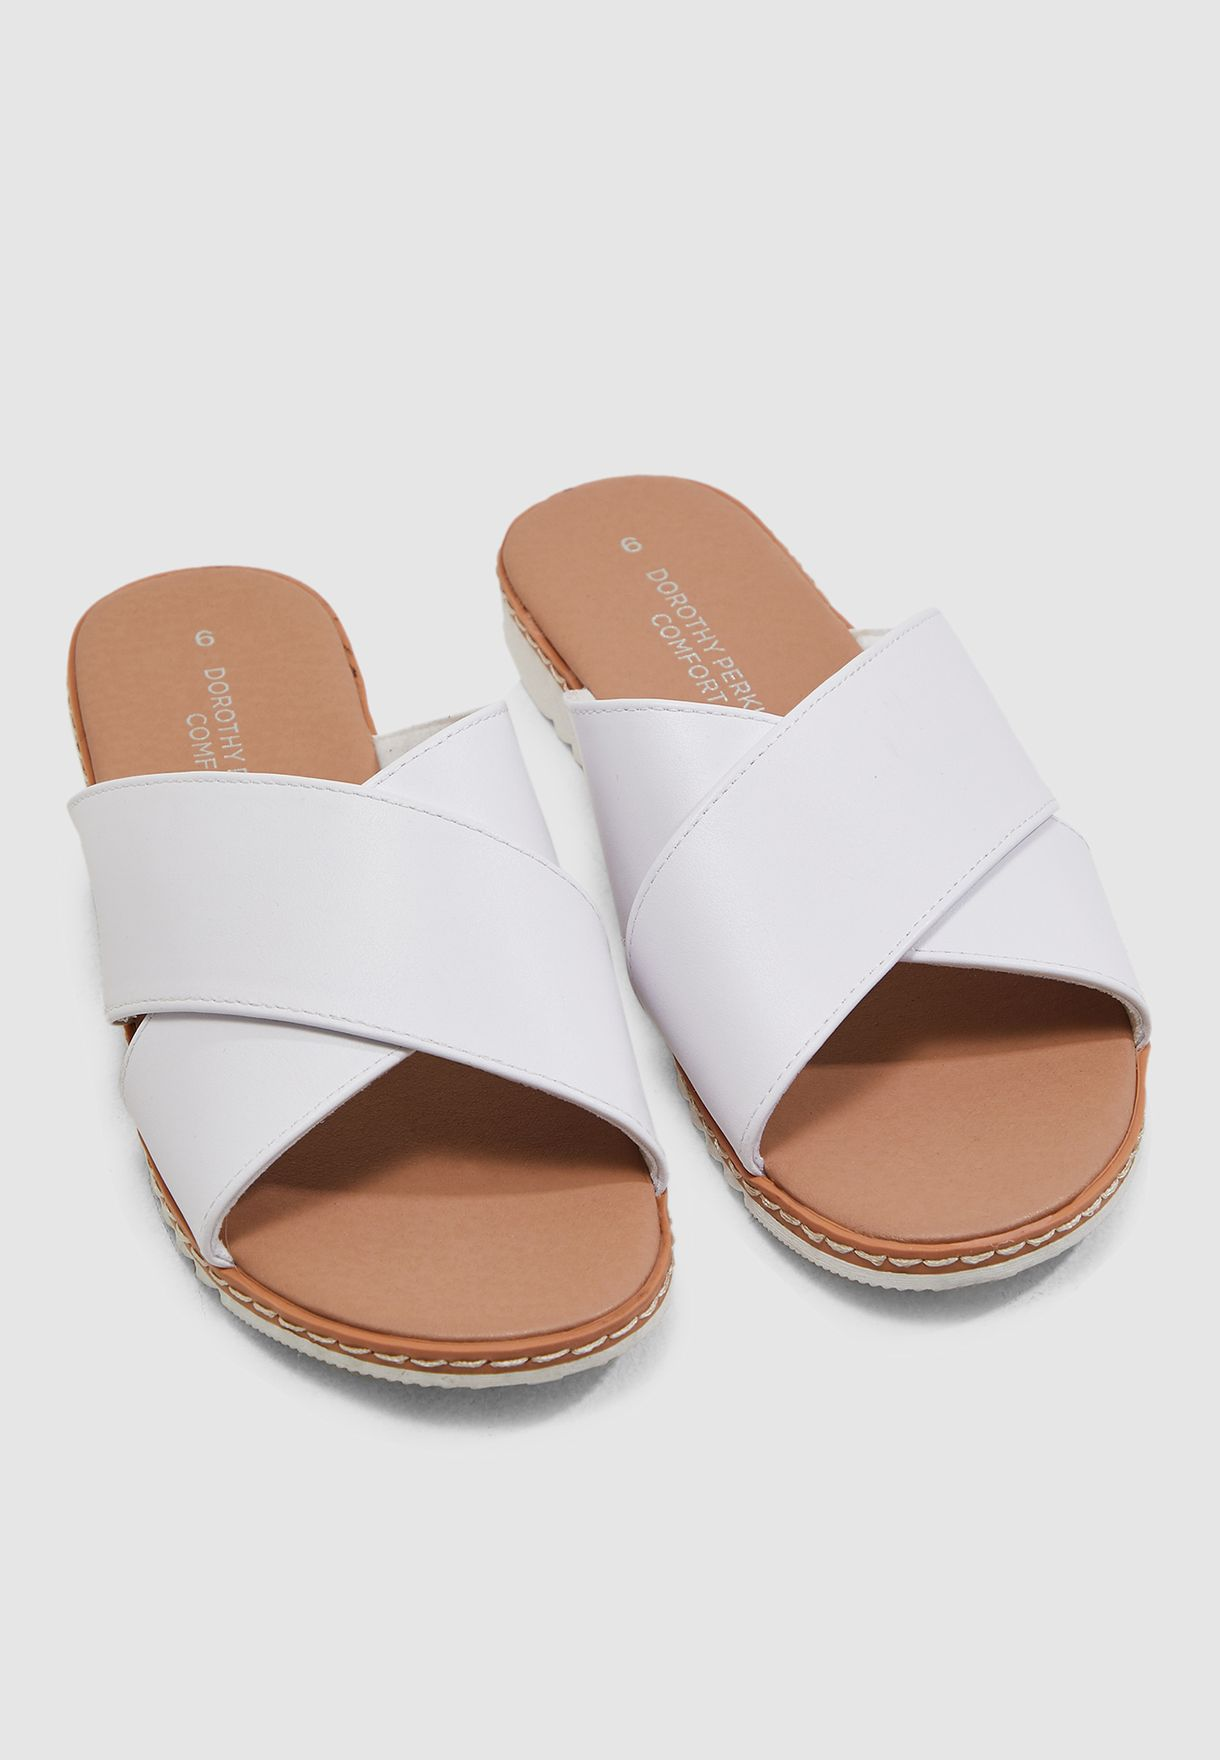 Felicity Cross Over Sponge Sandal